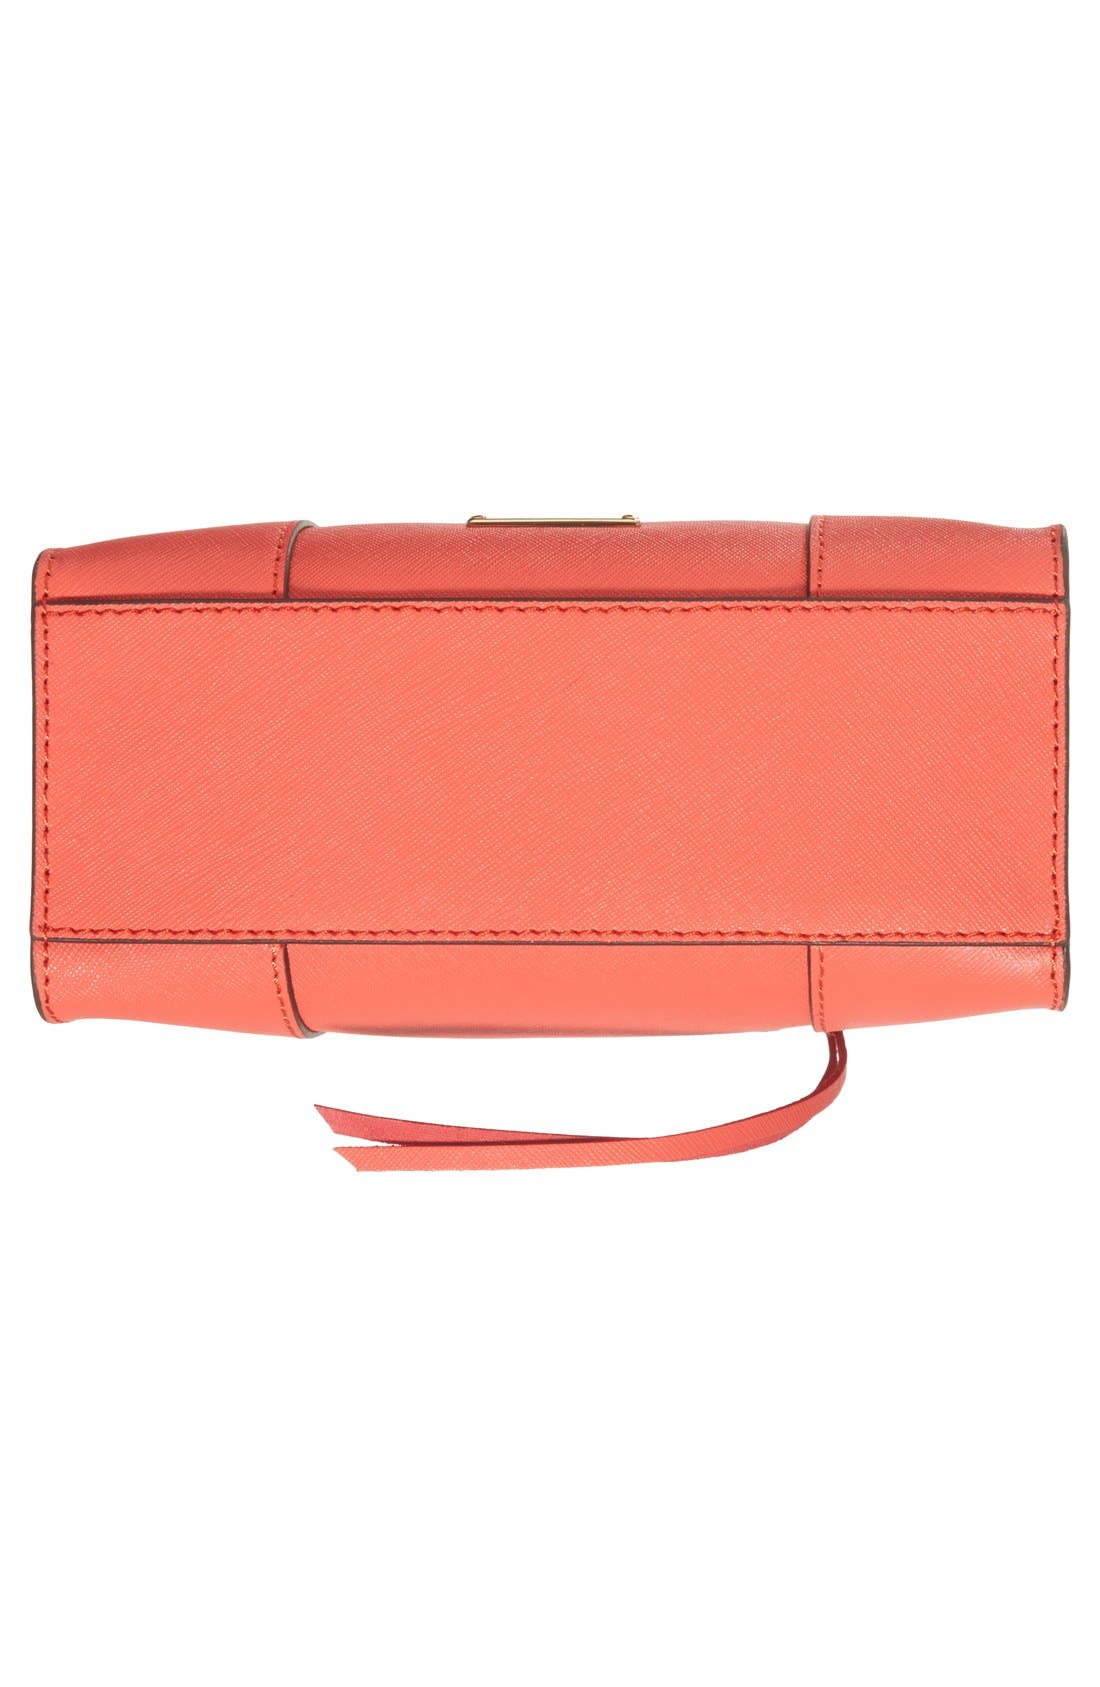 'Mini MAB Tote' Crossbody Bag,                             Alternate thumbnail 136, color,